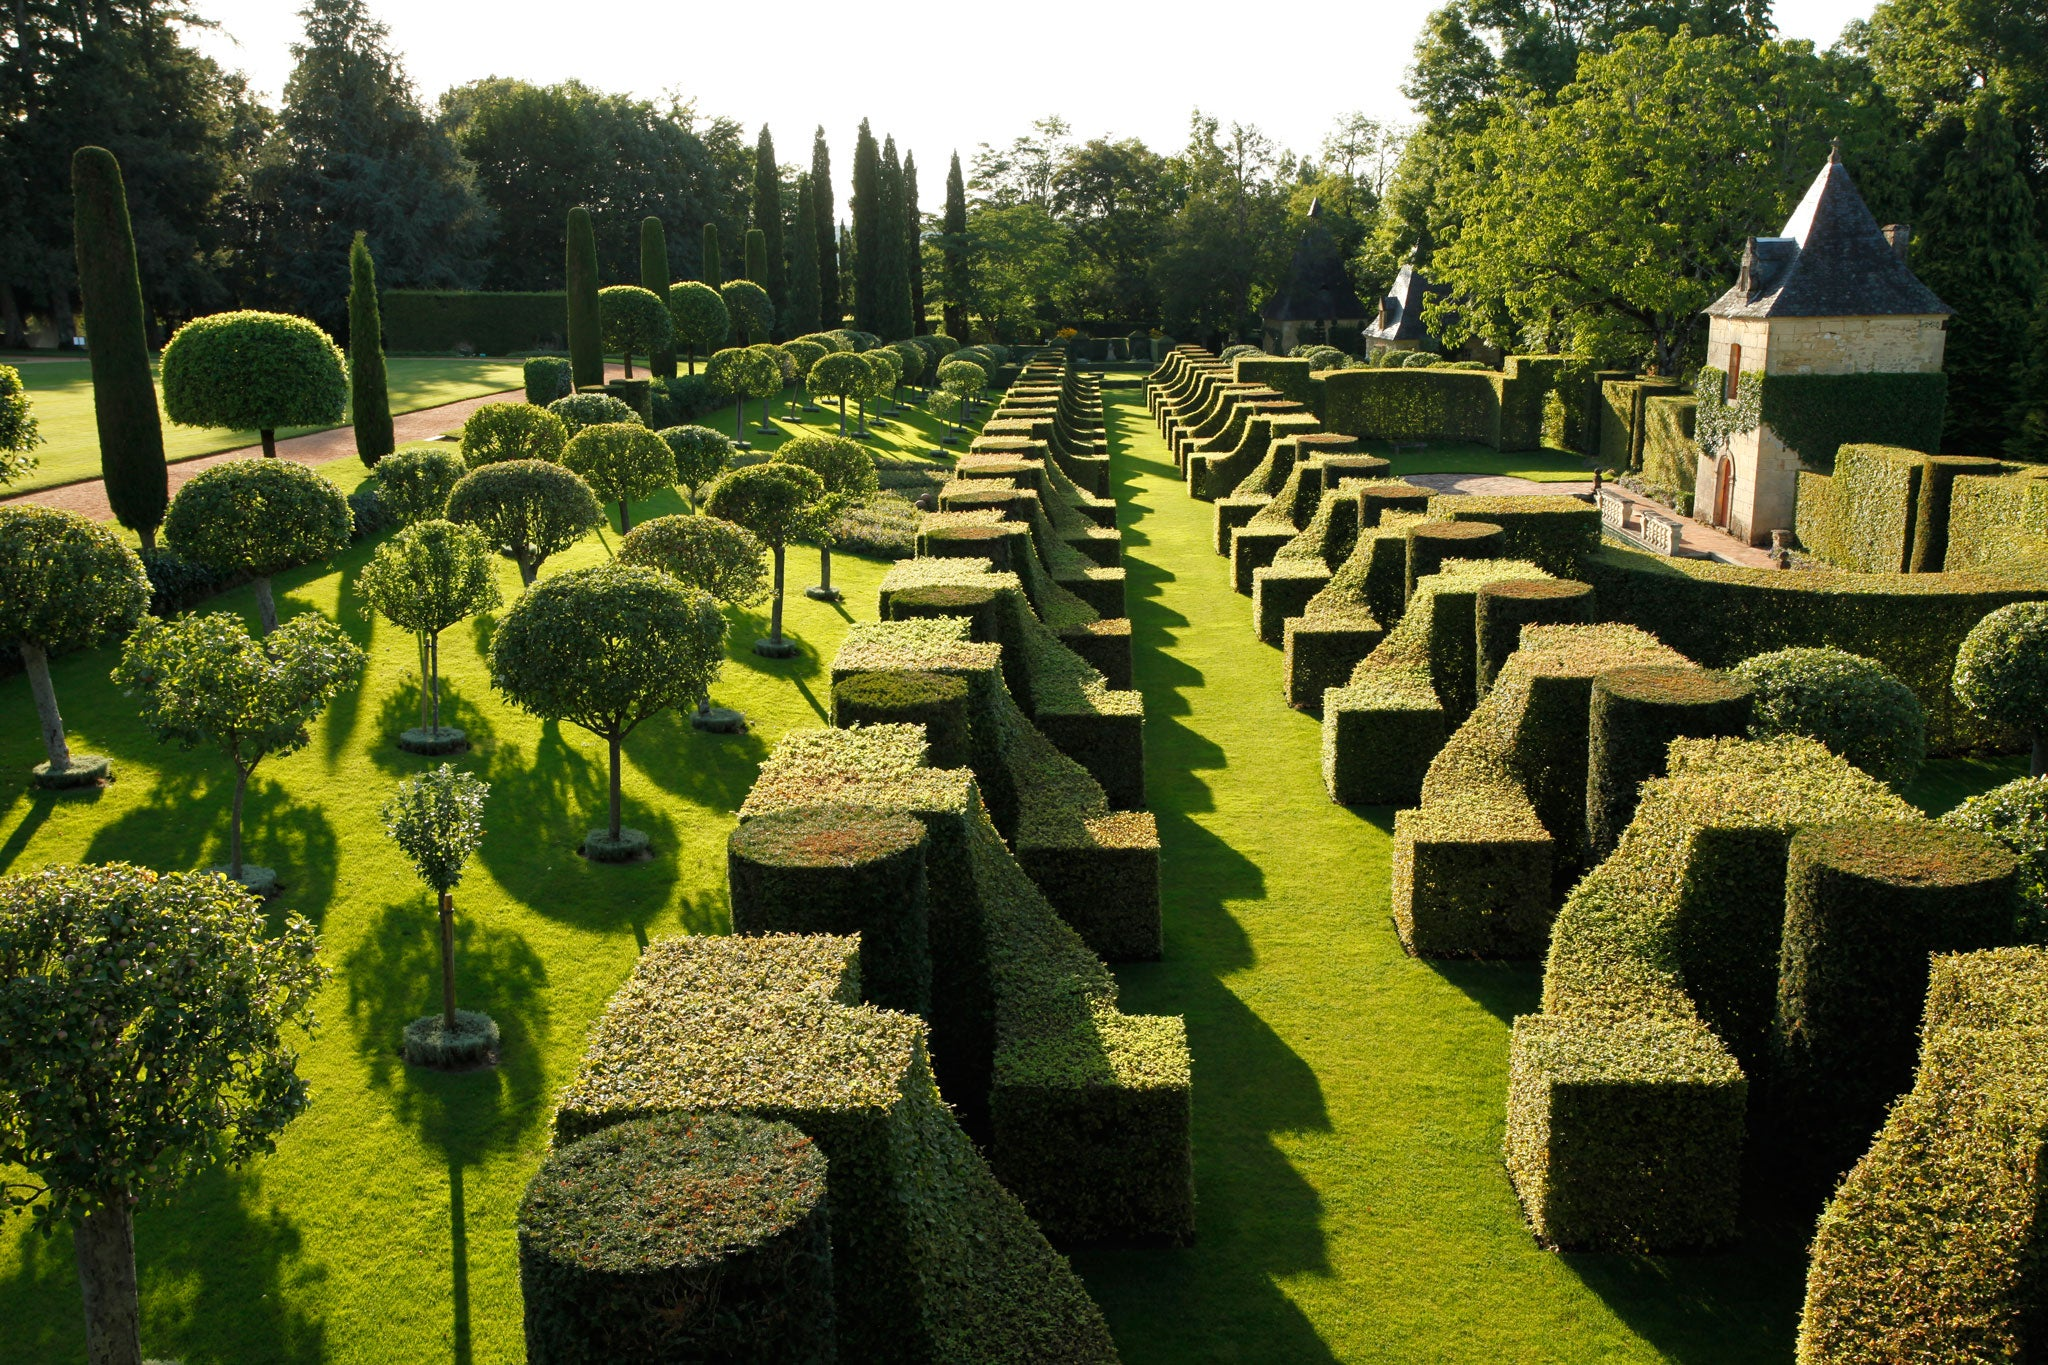 Hedging their bets Anna Pavord visits an immaculate garden in